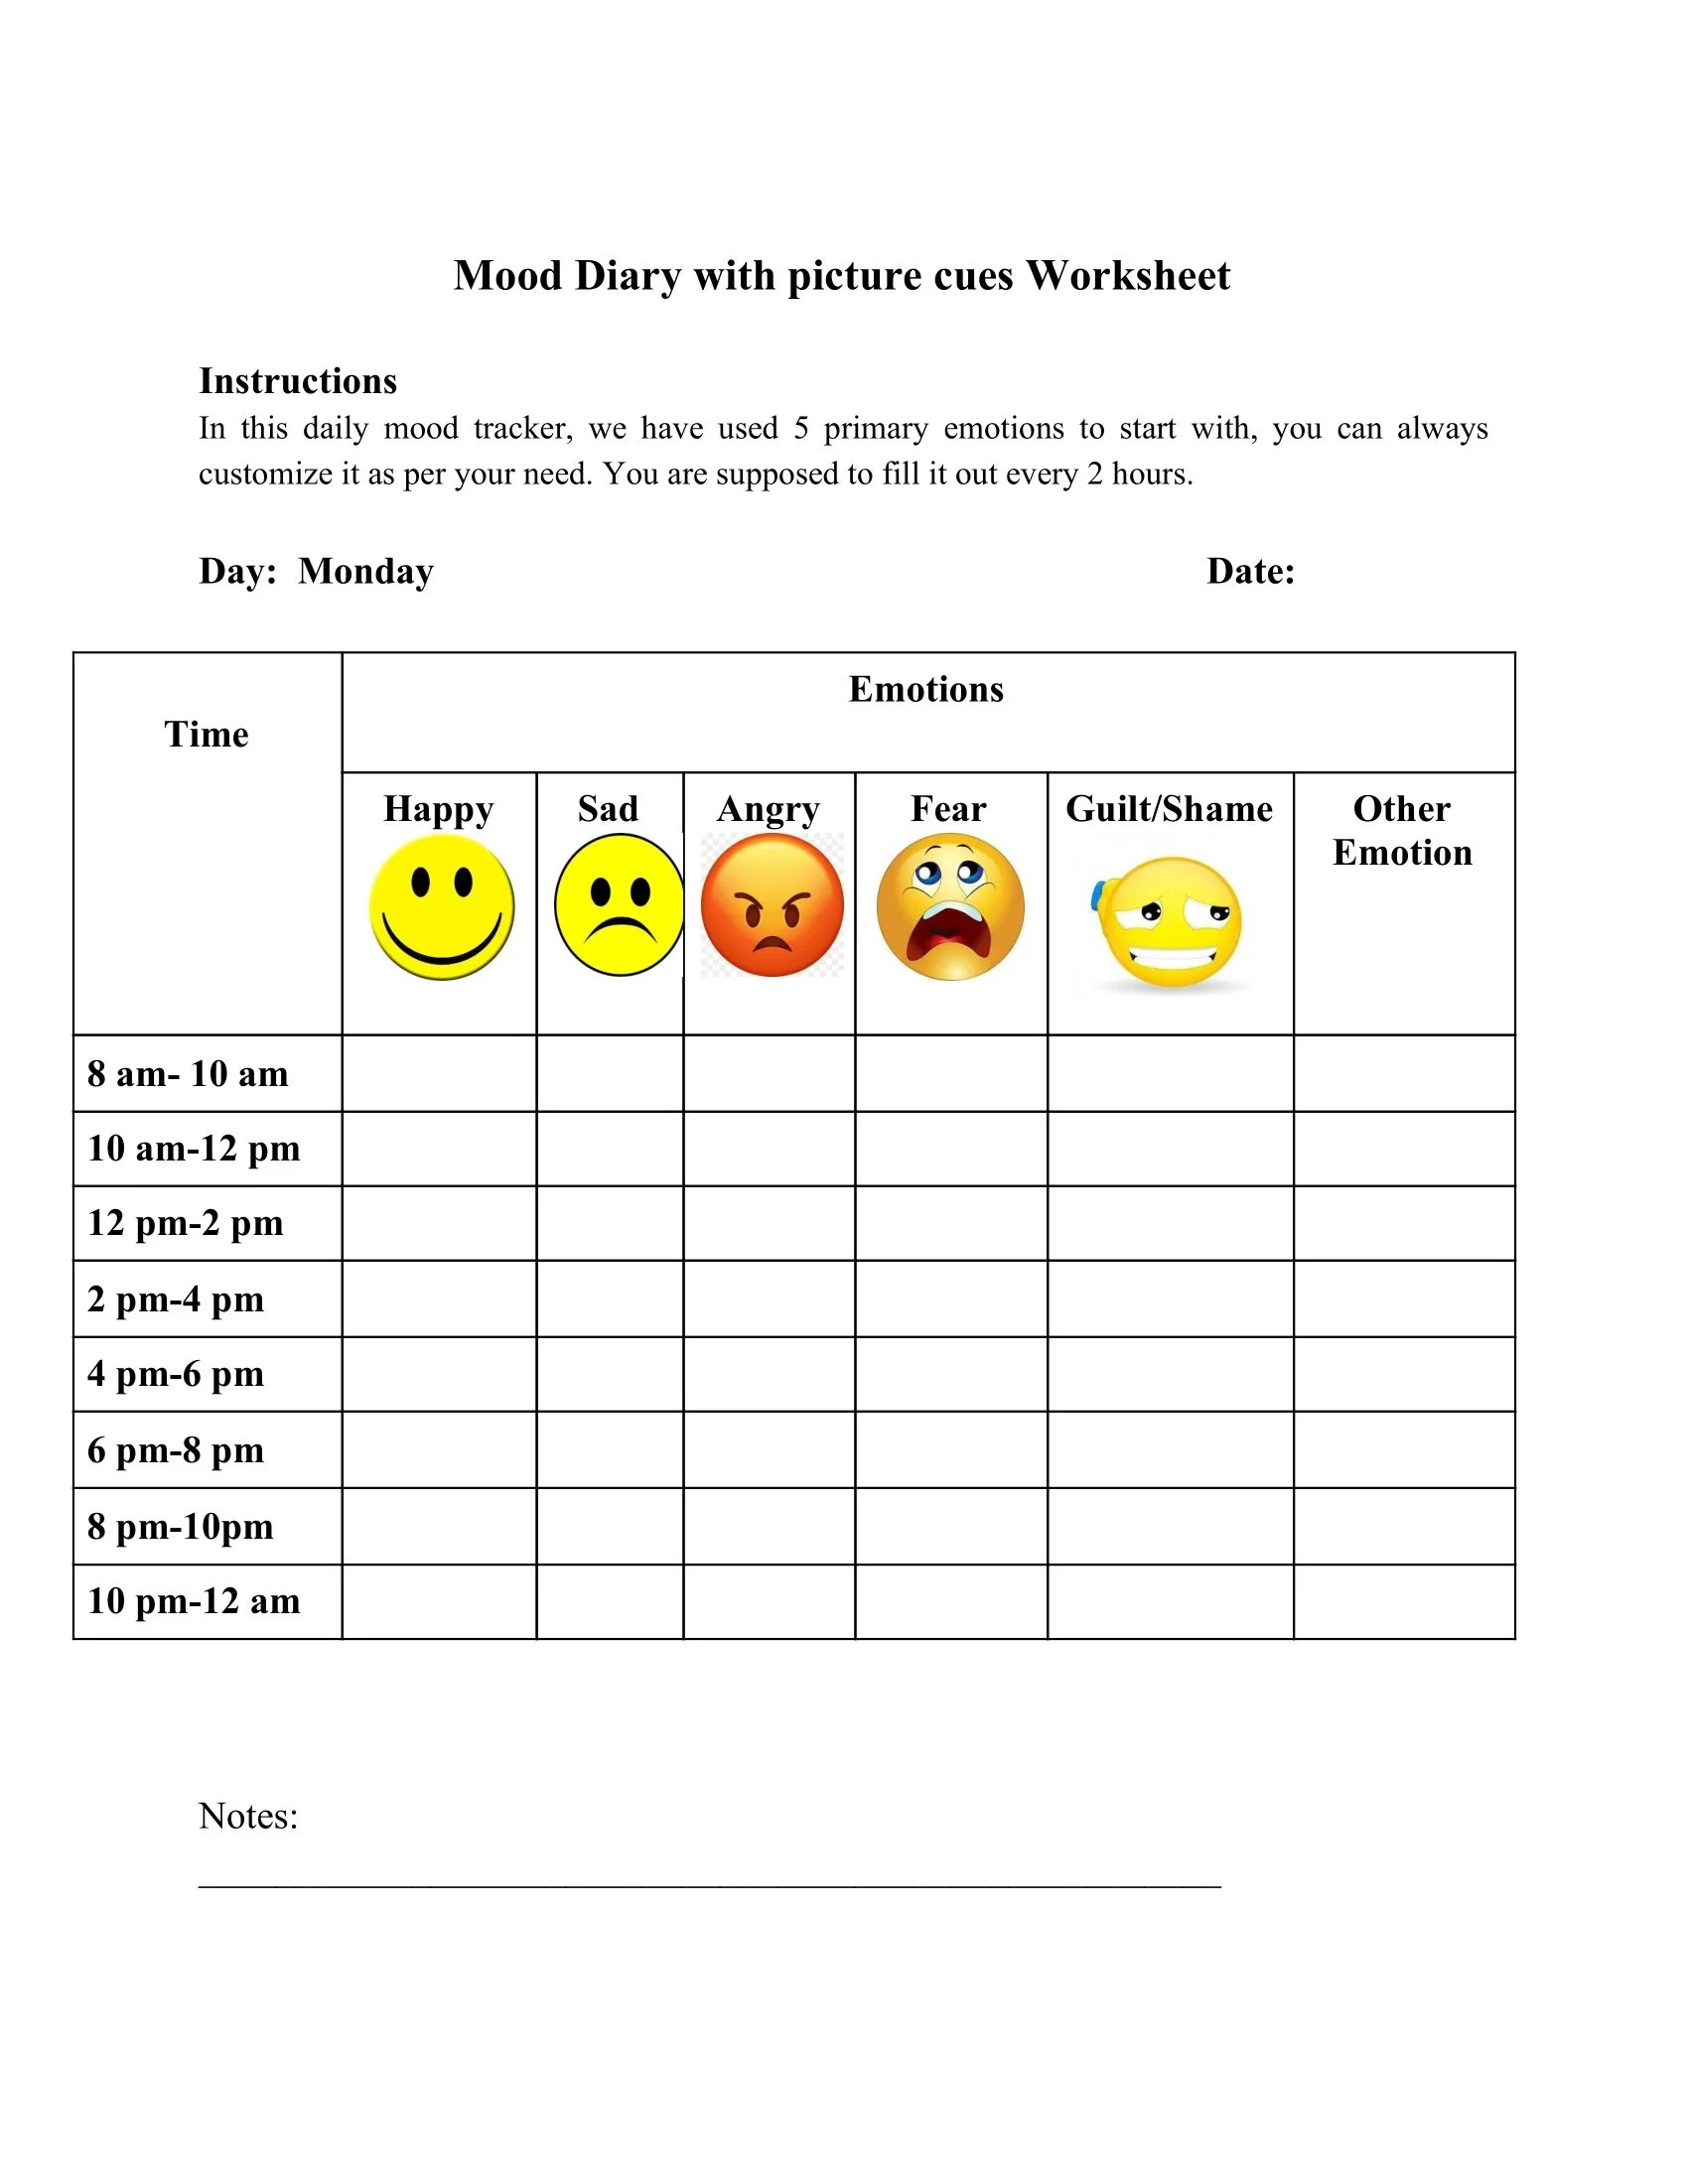 Mood Diary With Picture Cues Worksheet